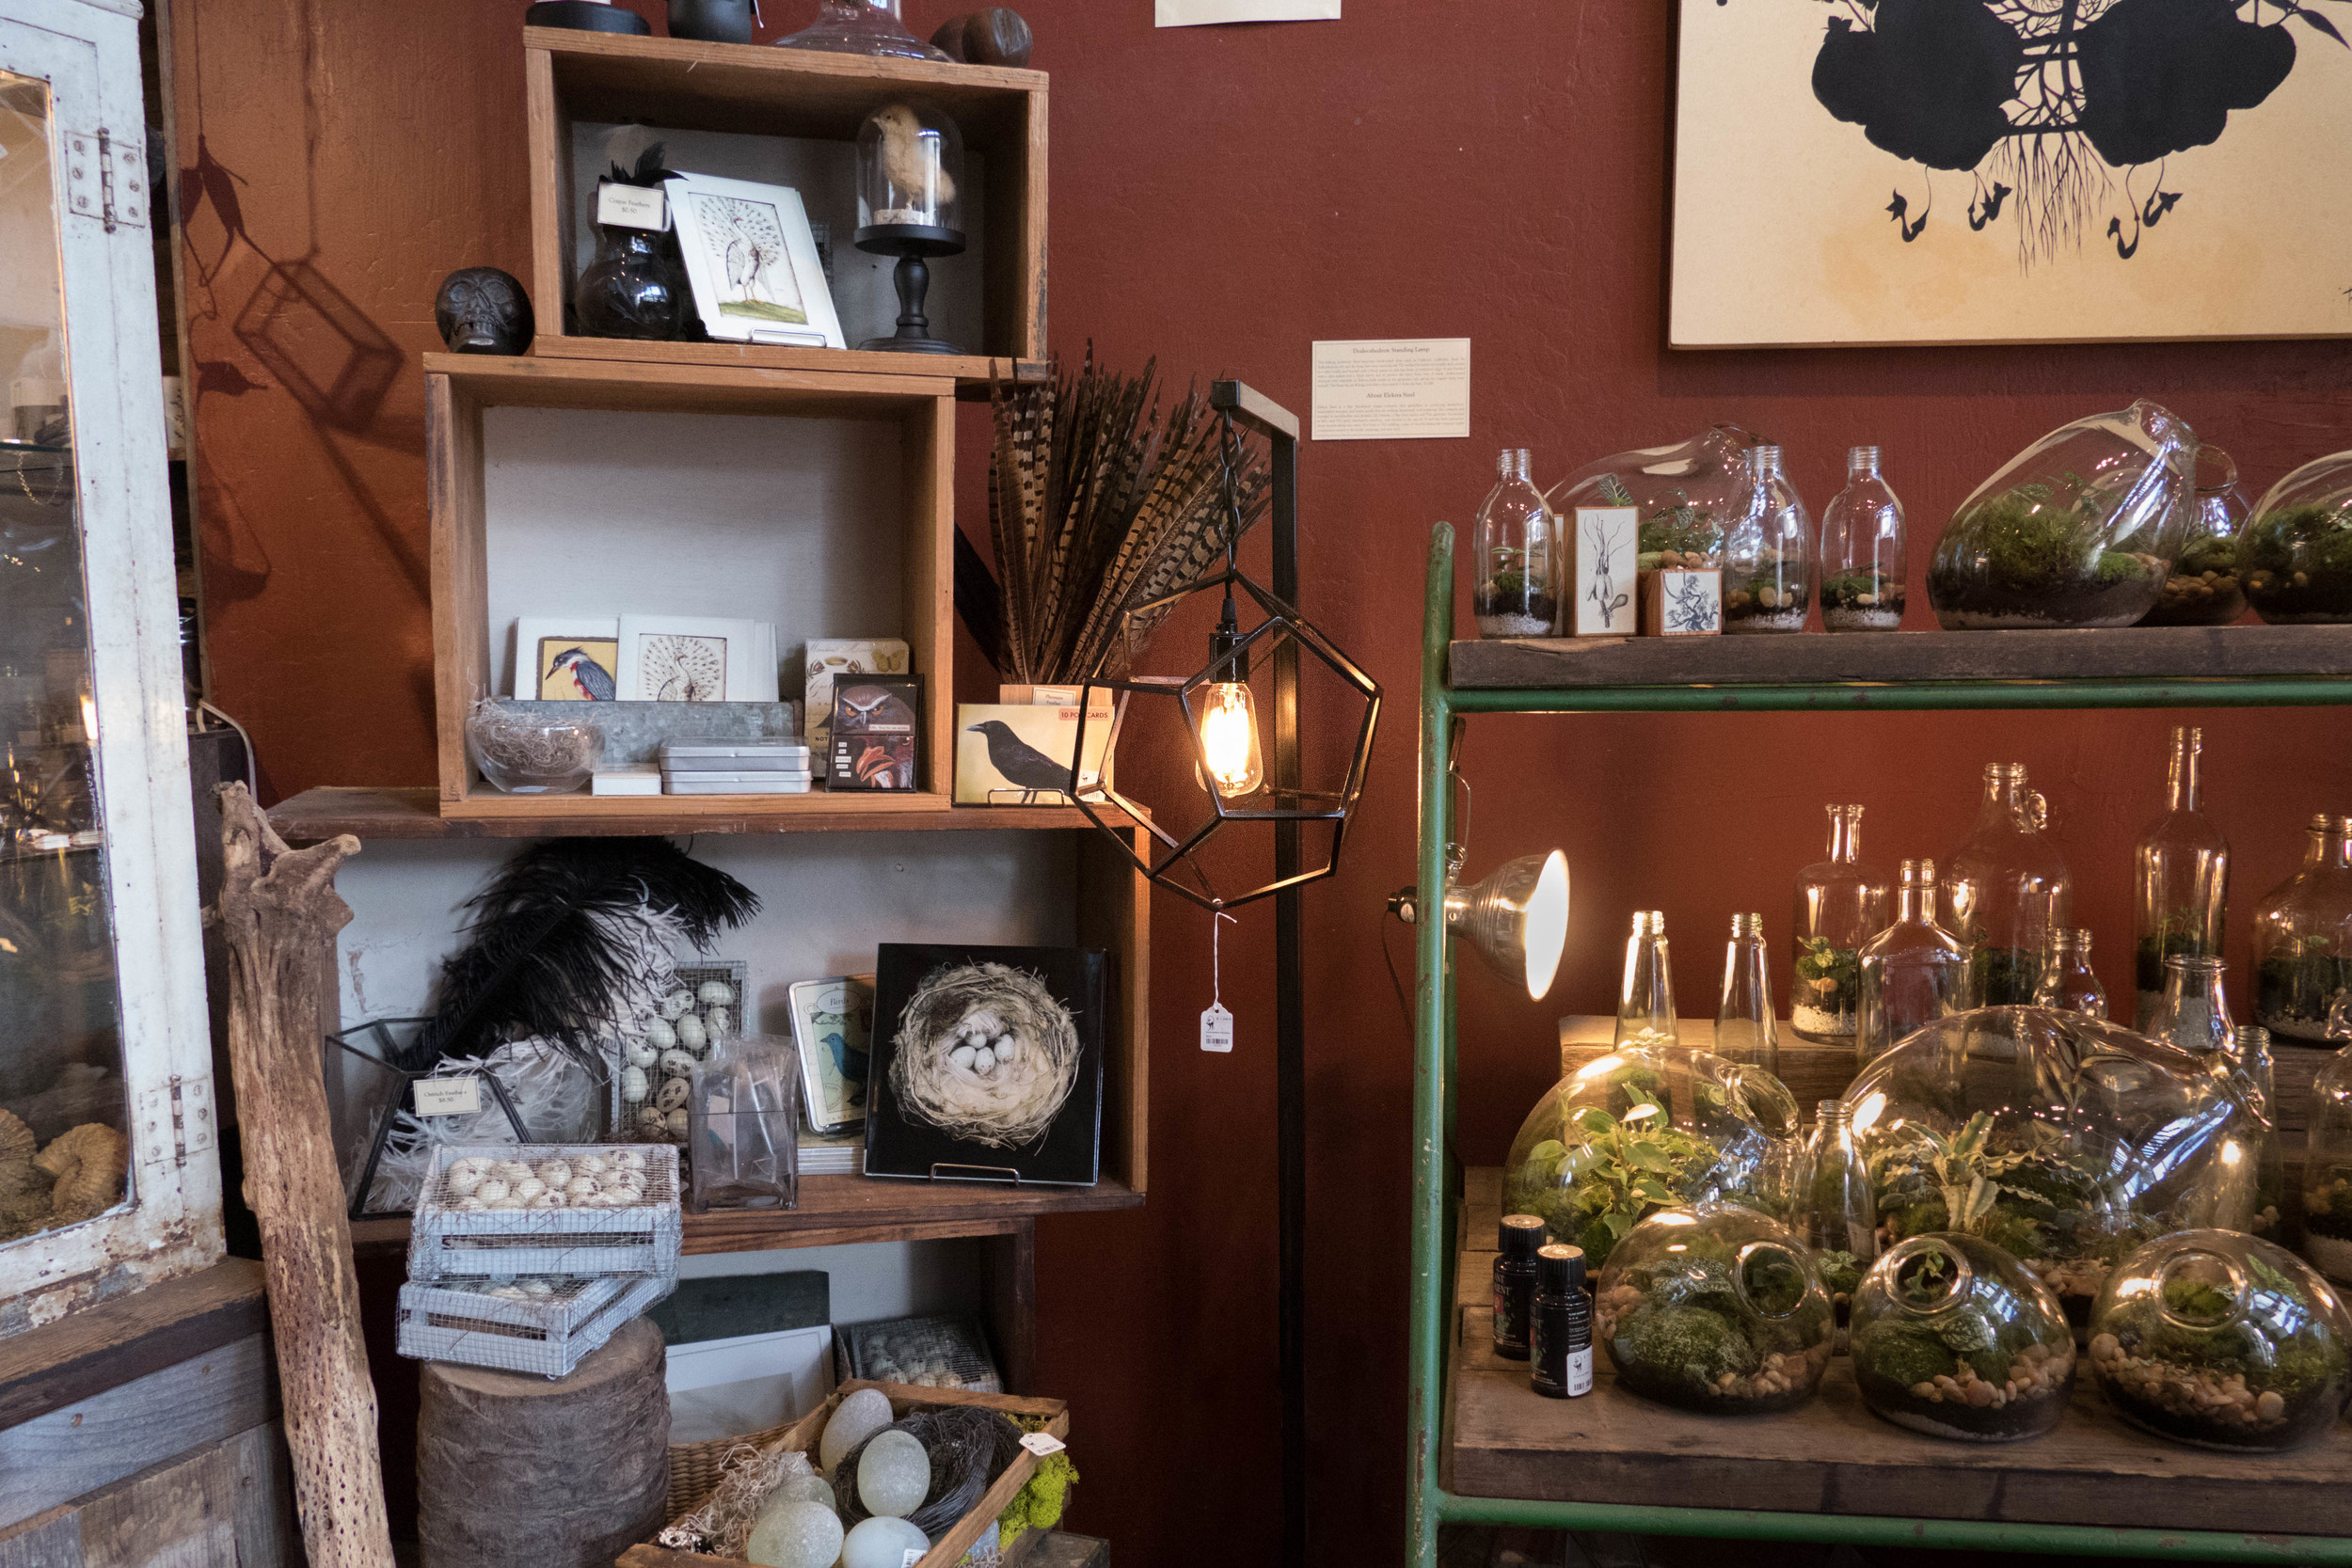 The dodecahedron floor lamp, nestled amongst feathers, eggs, terrariums, and other curiosities at Paxton Gate in San Francisco.